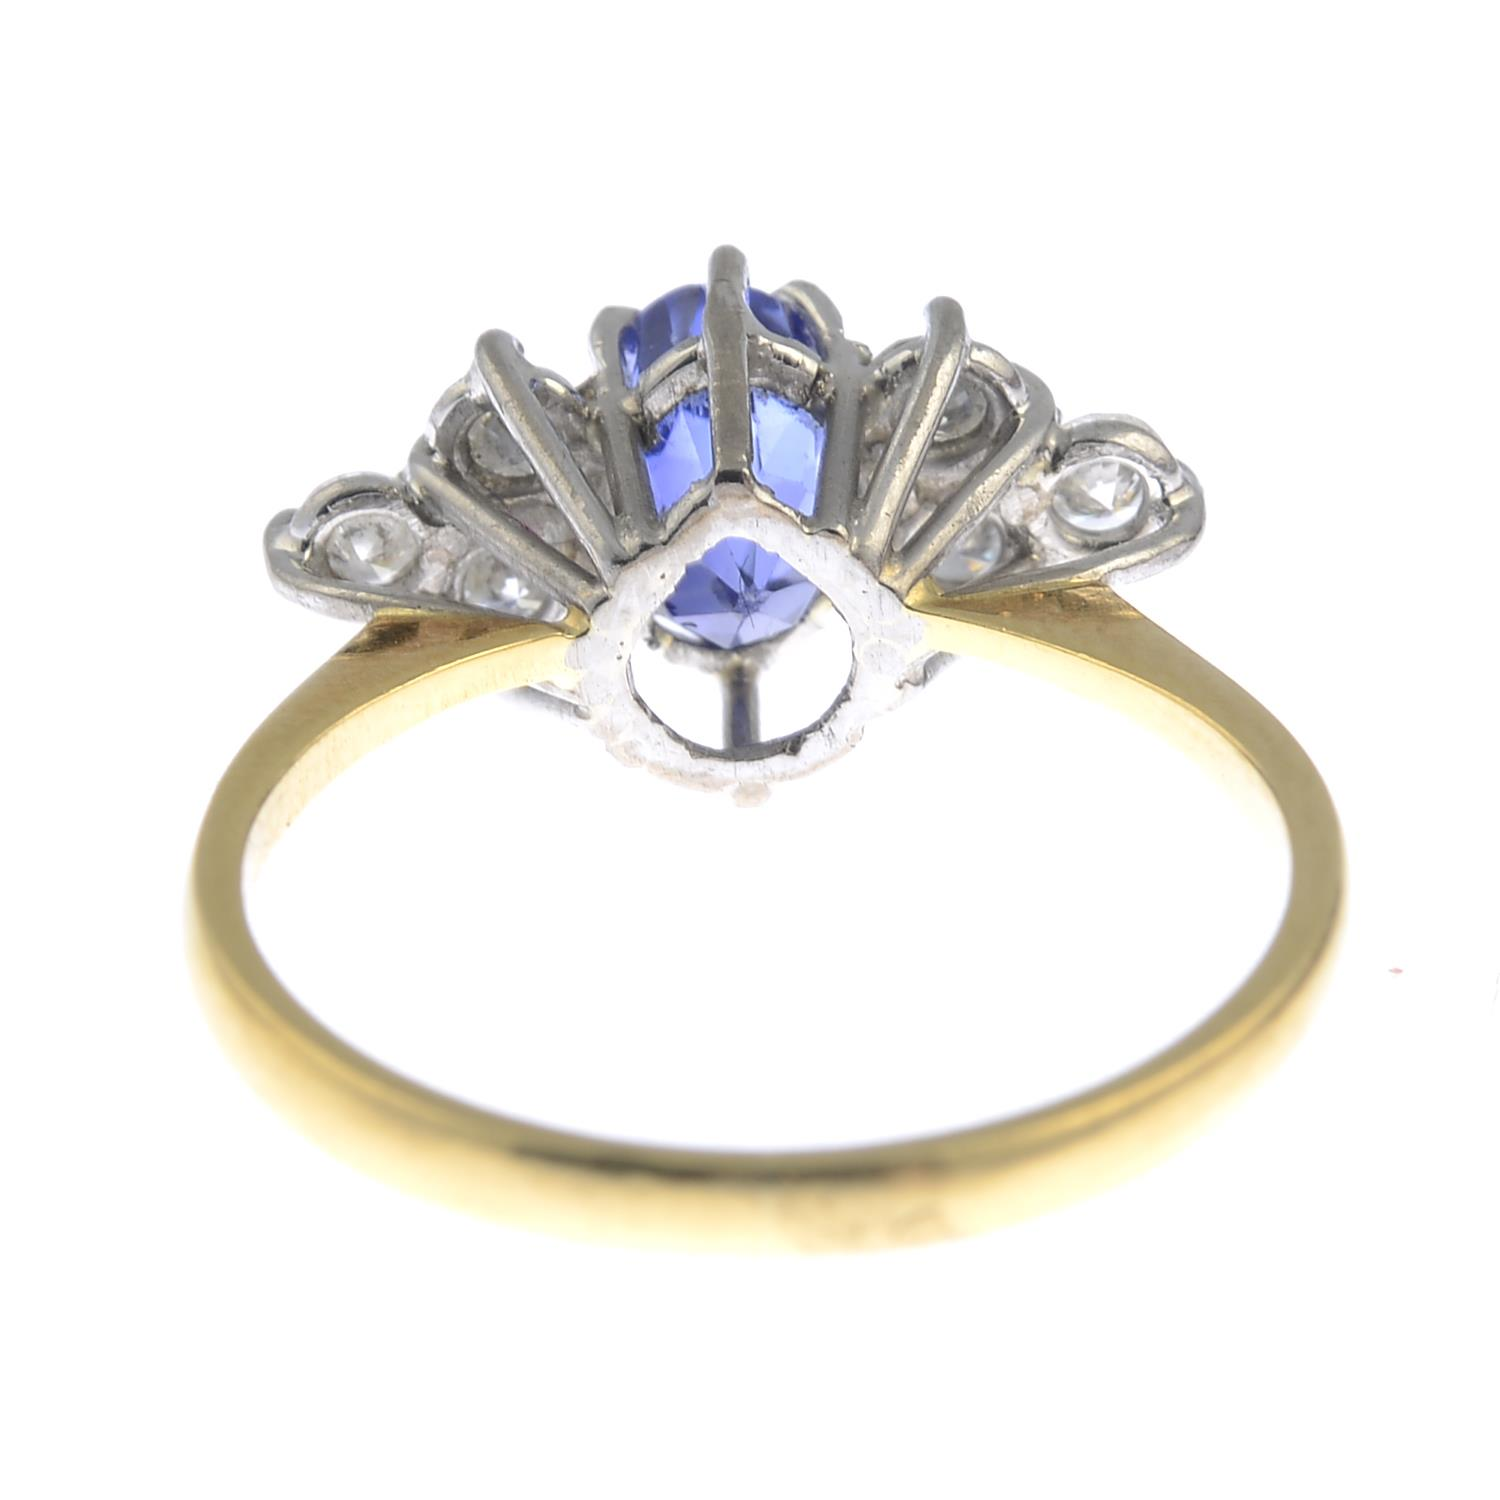 Lot 6 - An 18ct gold sapphire and diamond ring.Sapphire calculated weight 1.35cts,